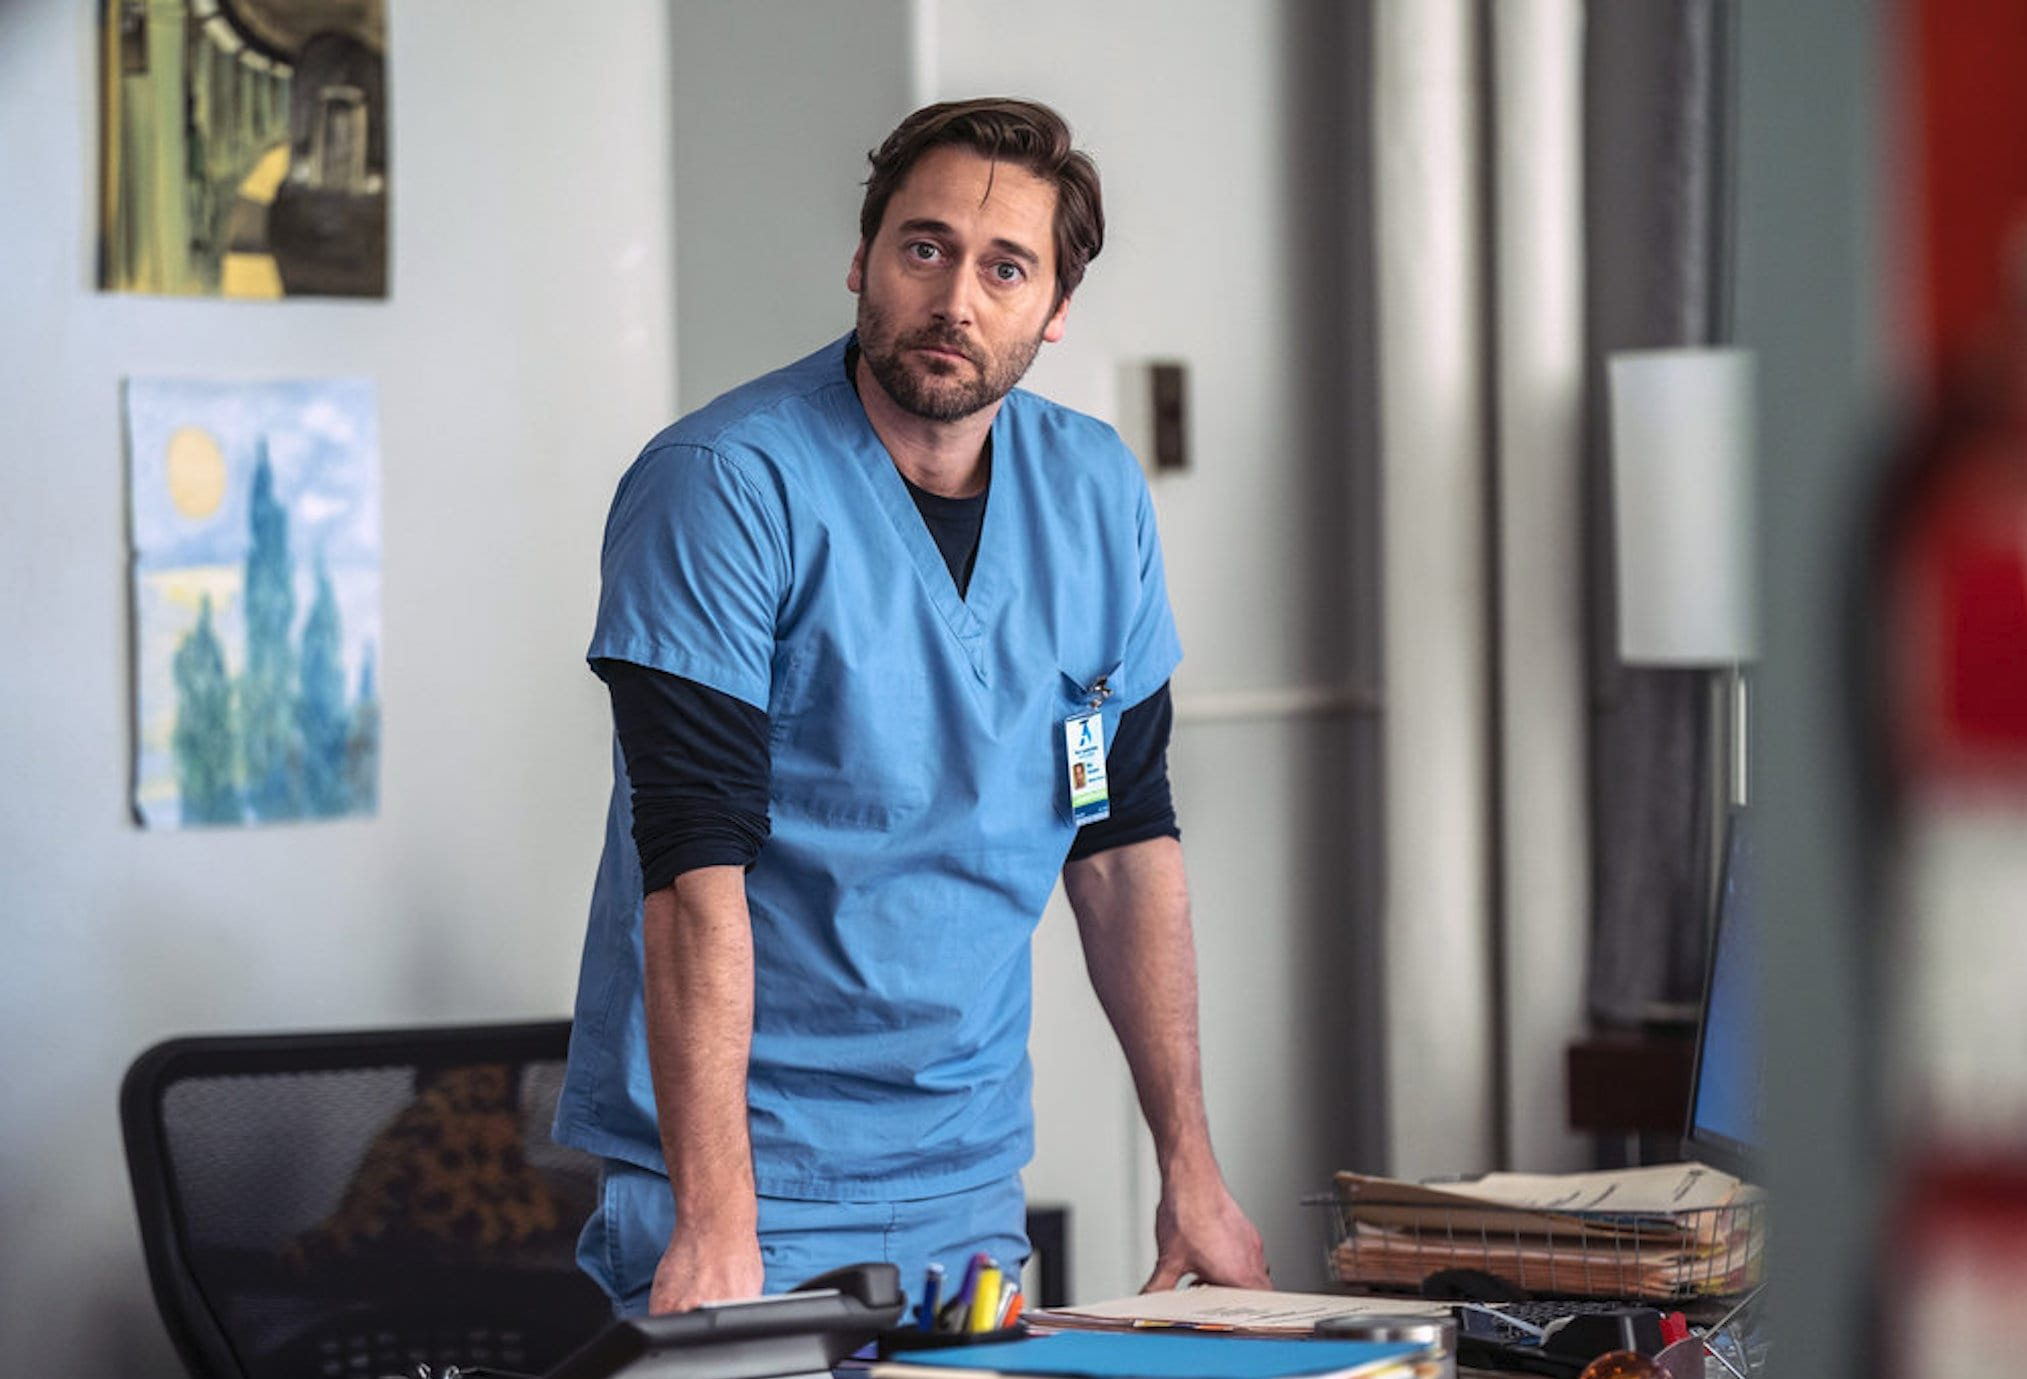 Does Max Die In New Amsterdam?